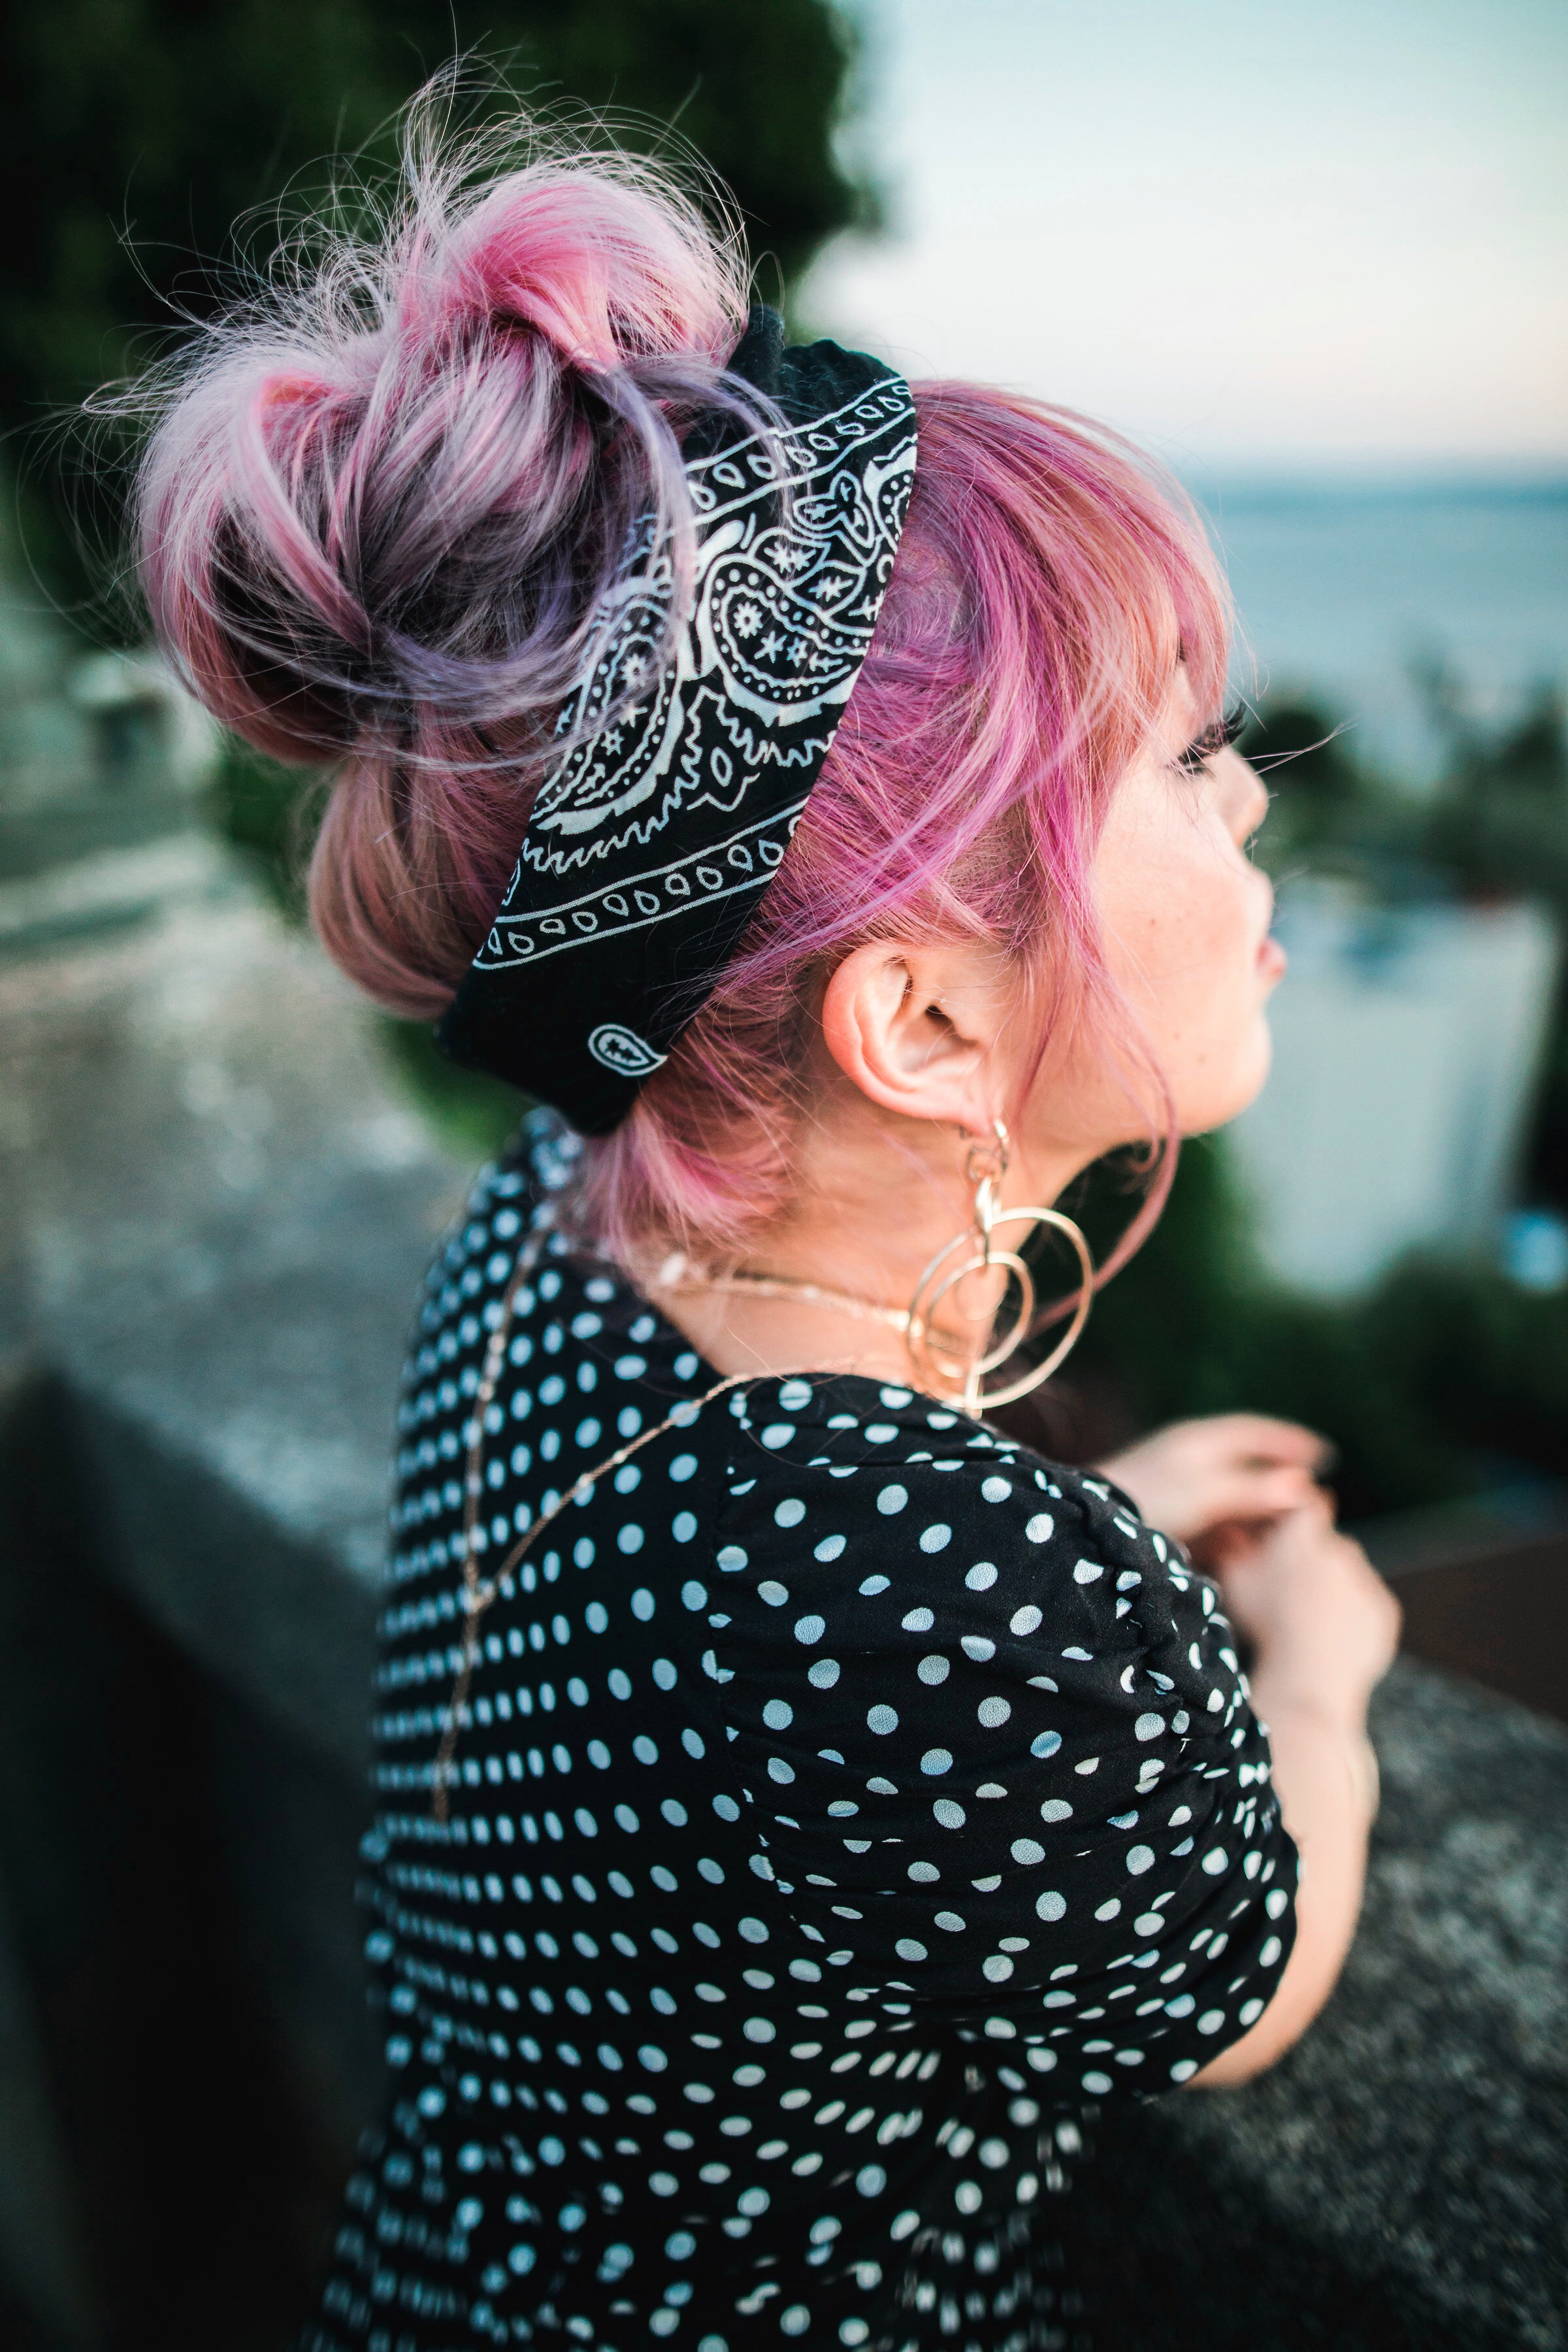 IMG_9322.JPGASOS Polkadot Romper_Urban Outfitter Bandana_Zara Statement Earrings_H&M White Crossbody Bag_ShoeDazzle Yellow Lace up Wedge Sandals_Aikas Love Closet_Seattle Fashion Style Blogger_Japanese_Pink Hair_Street Snap_Summer Style_Messy bun updo 8